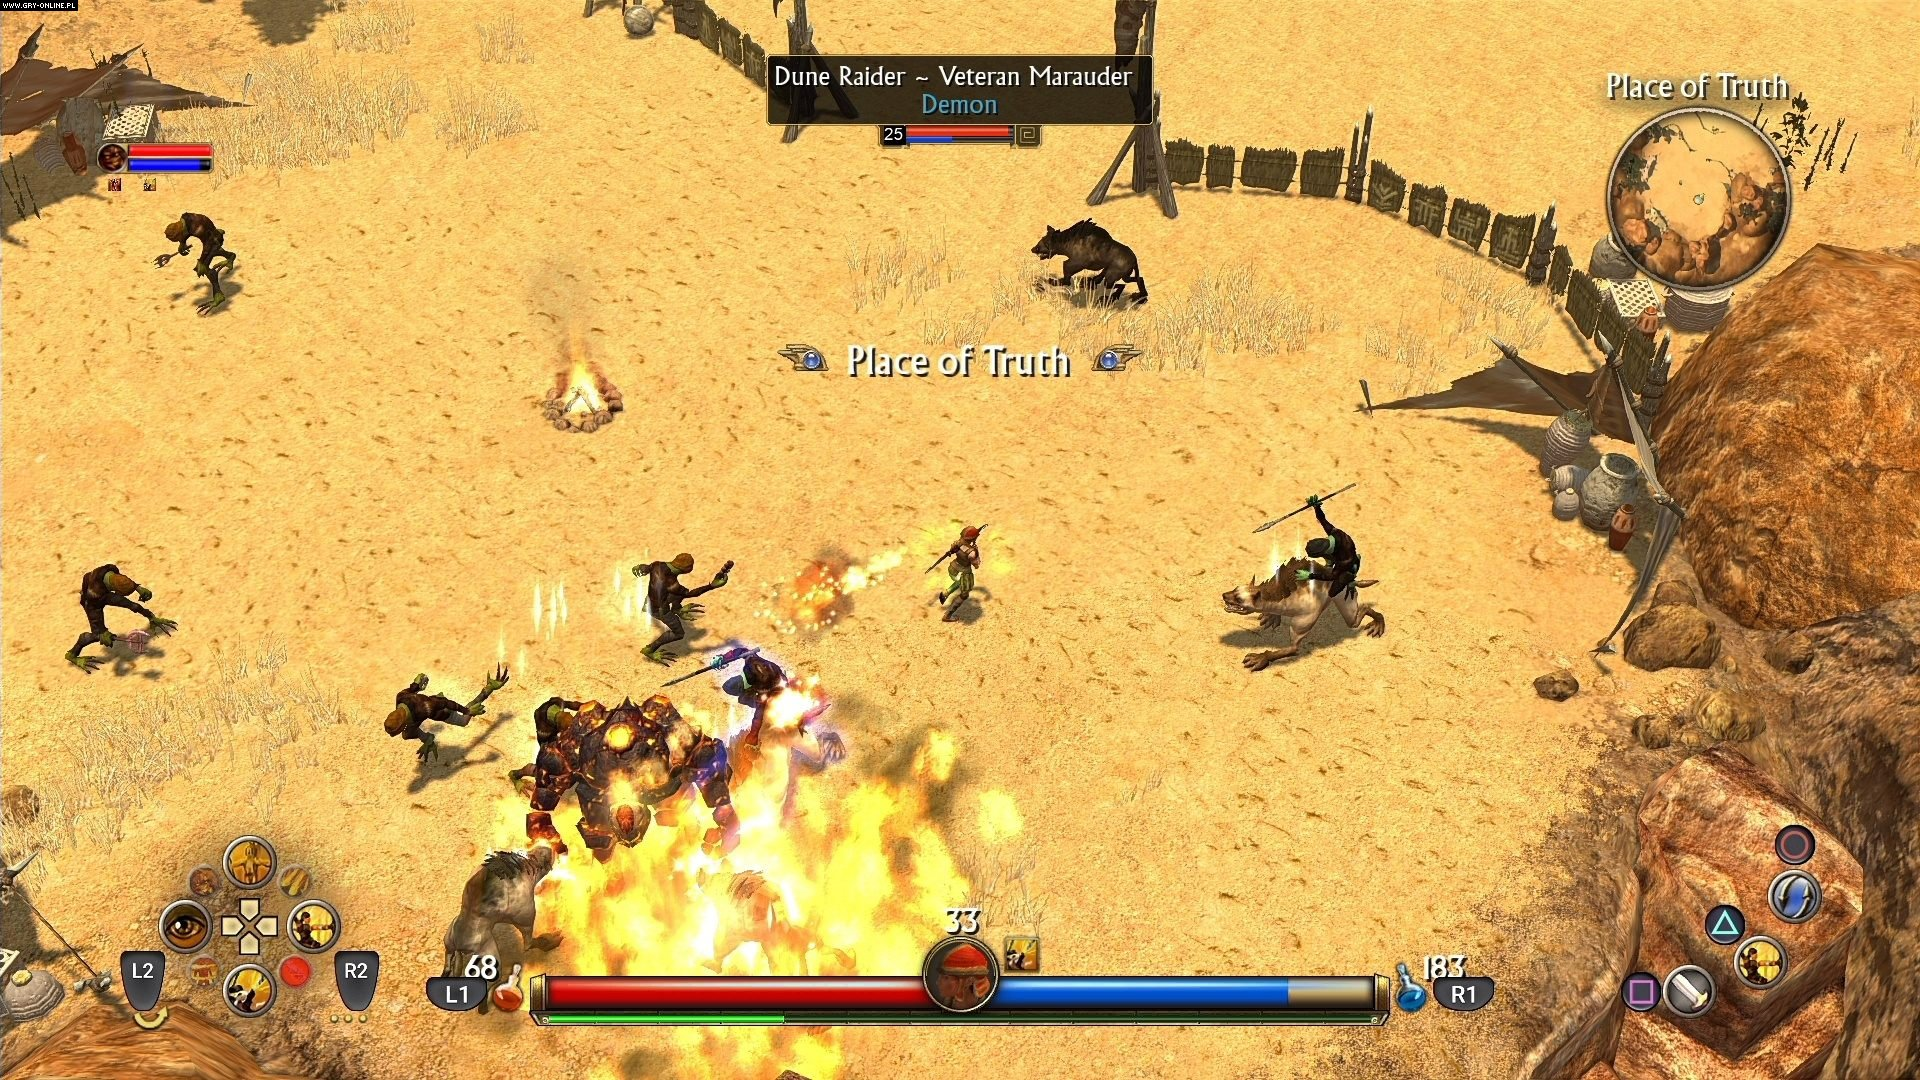 Titan Quest: Anniversary Edition PC, PS4, XONE, Switch Games Image 5/33, Iron Lore Entertainment, THQ Nordic / Nordic Games